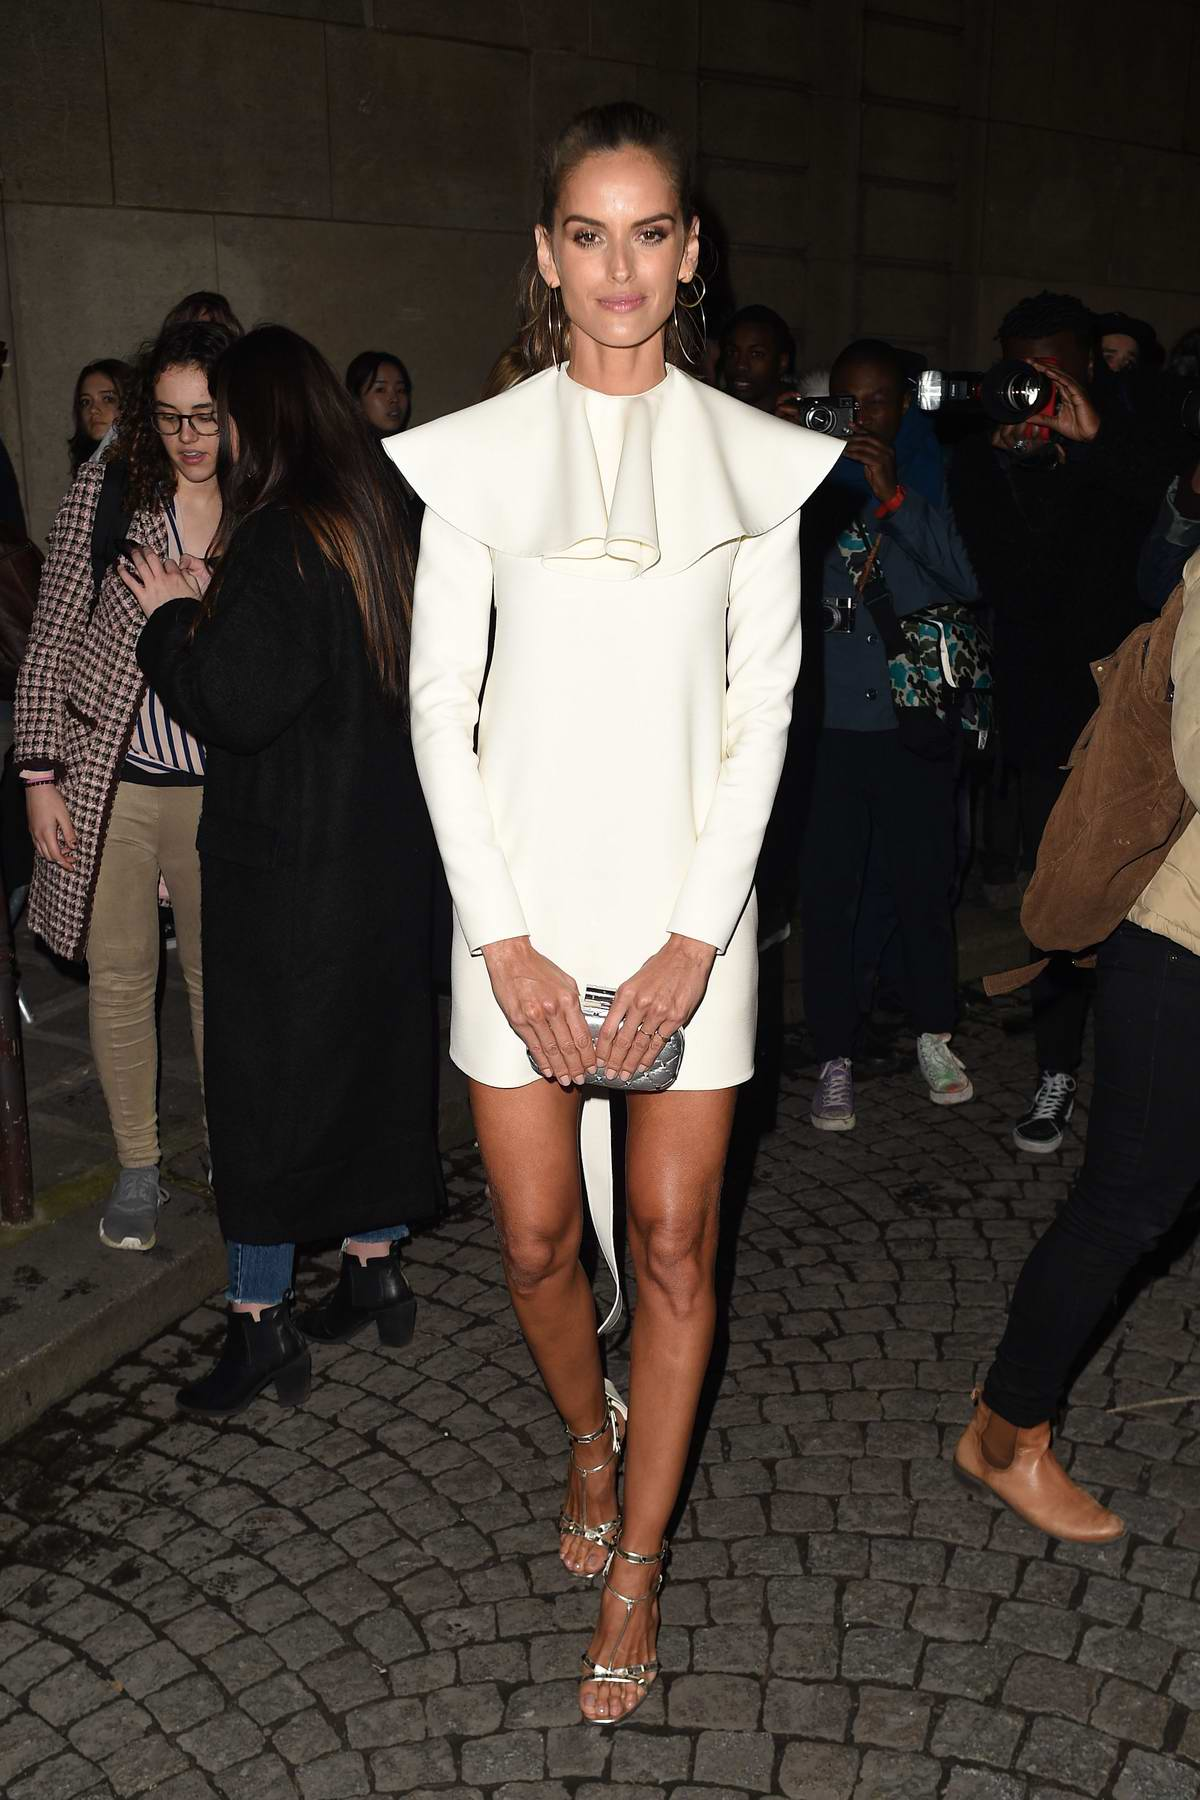 Izabel Goulart attends the Valentino Fashion Show during Paris Fashion Week in Paris, France